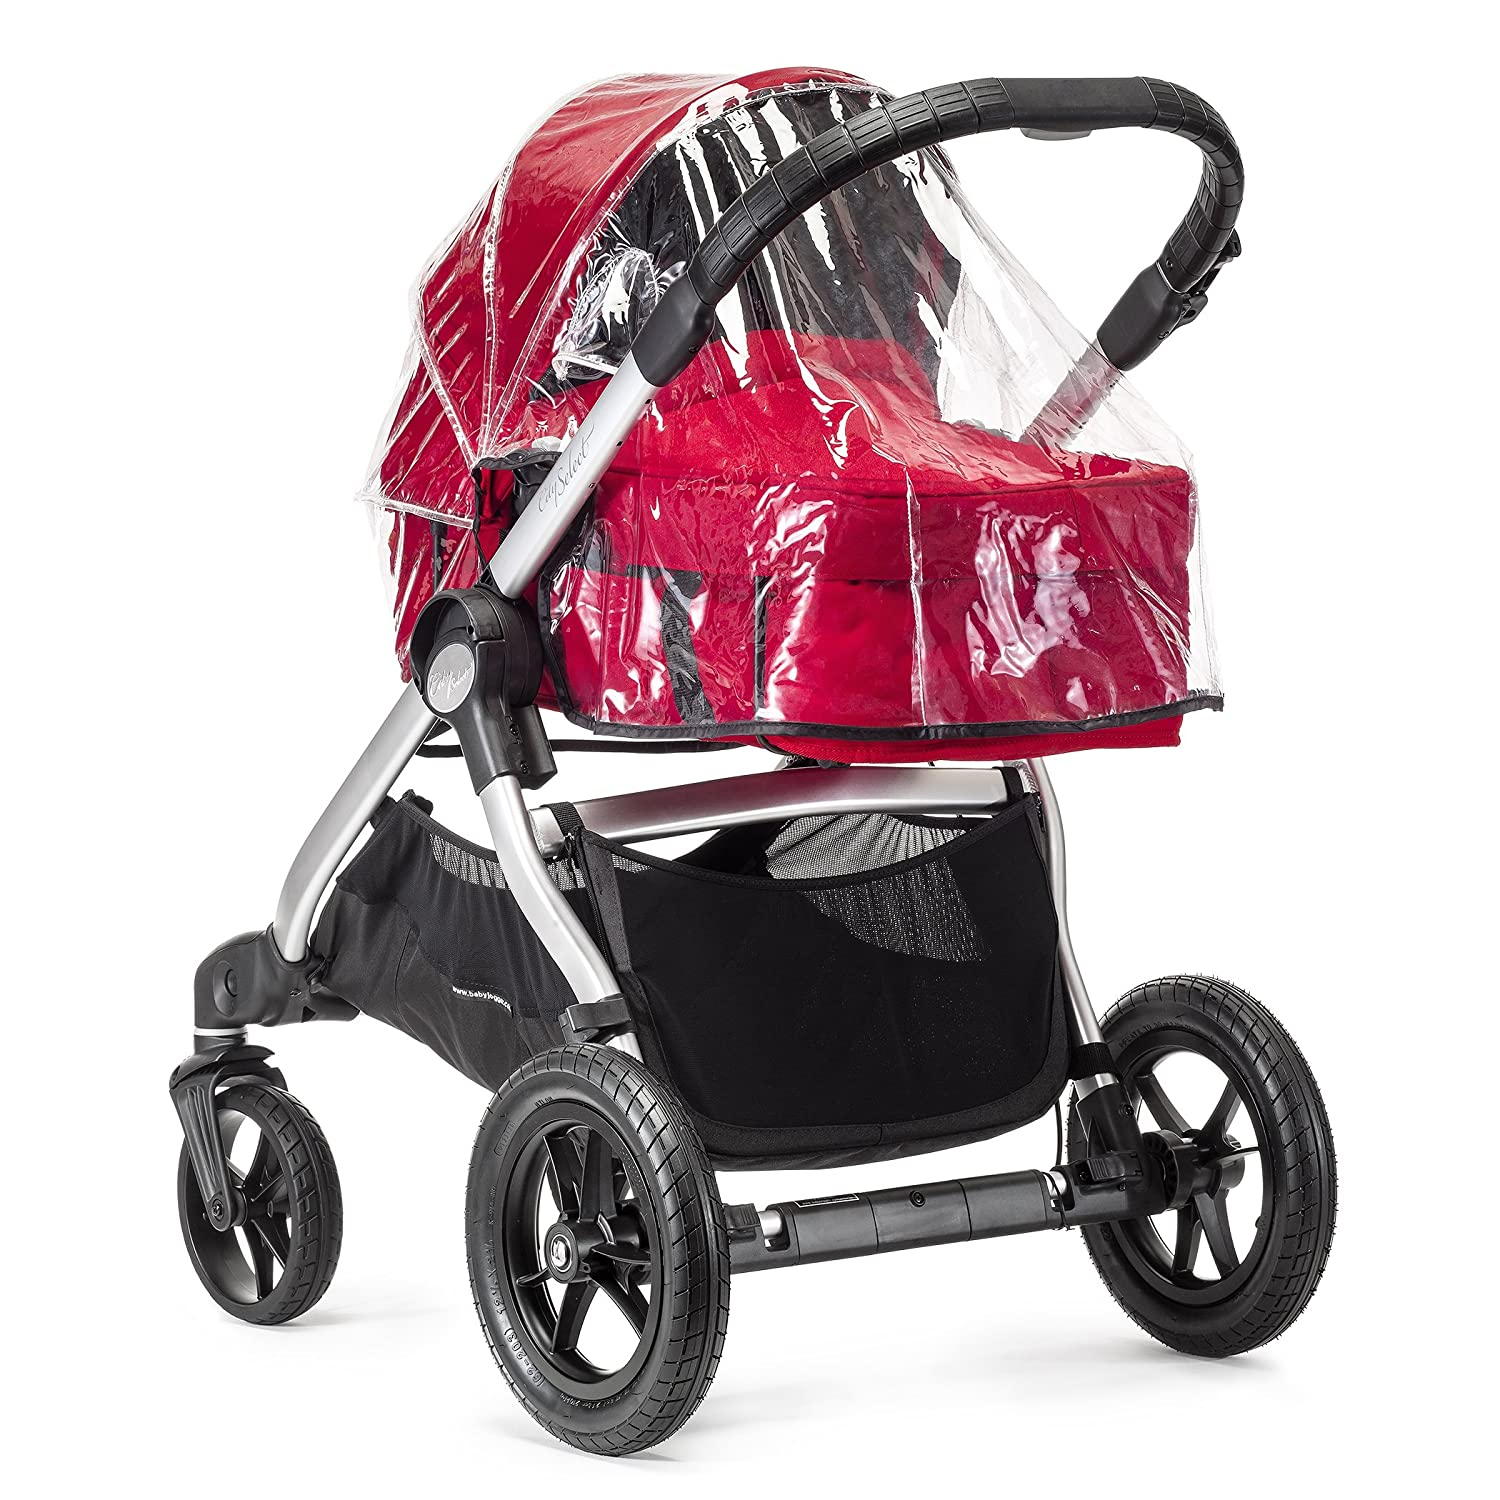 Baby Jogger Rain Canopy - City Select Bassinet Stroller Accessory BJ95151